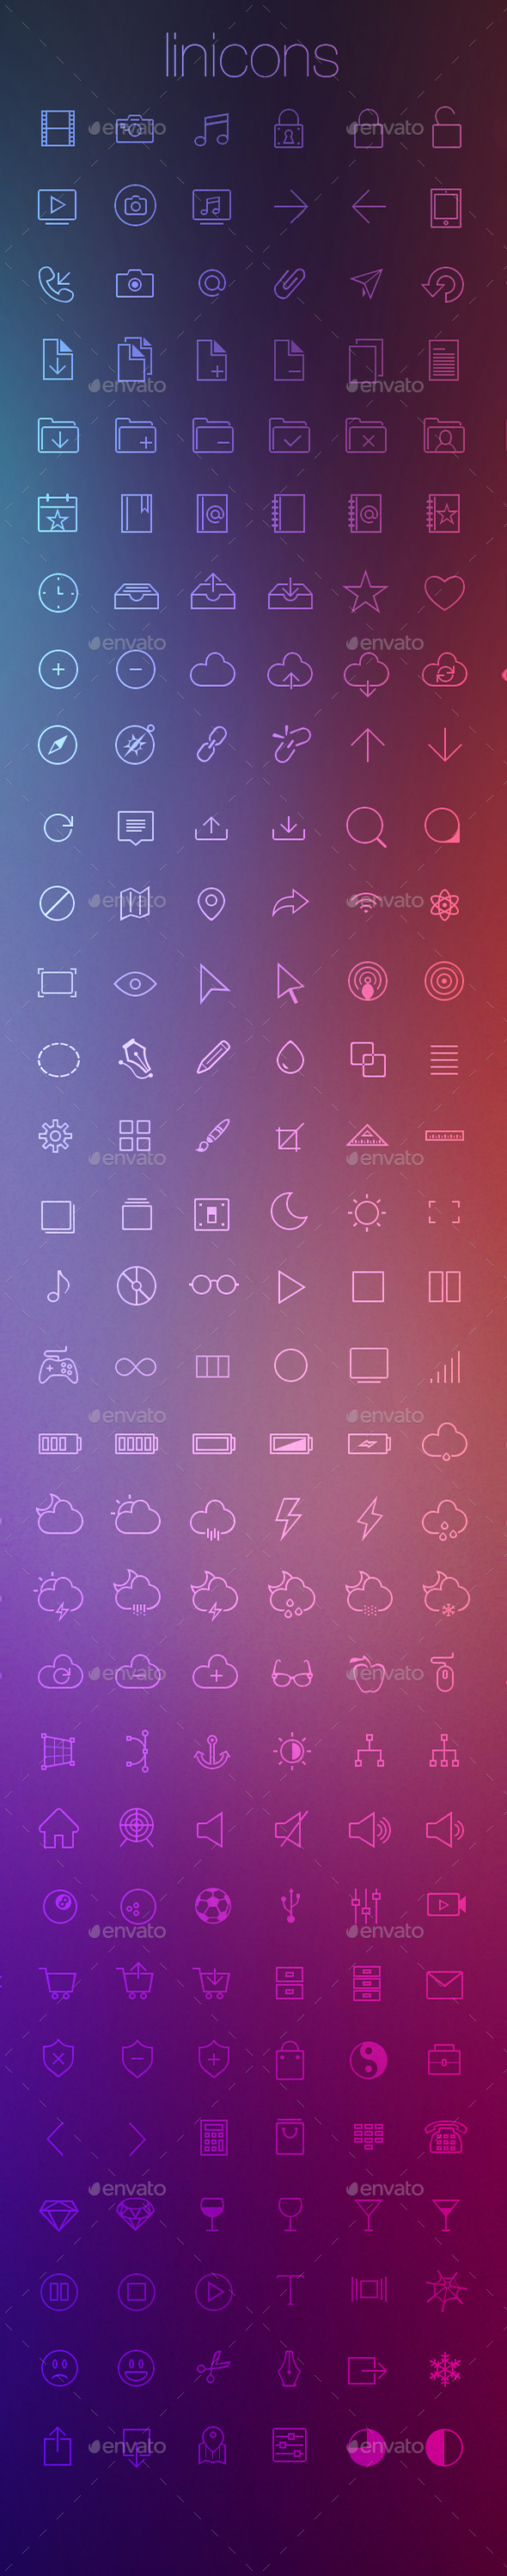 Linicons - 310 stroke icons CSH PSD PNG - Web Icons